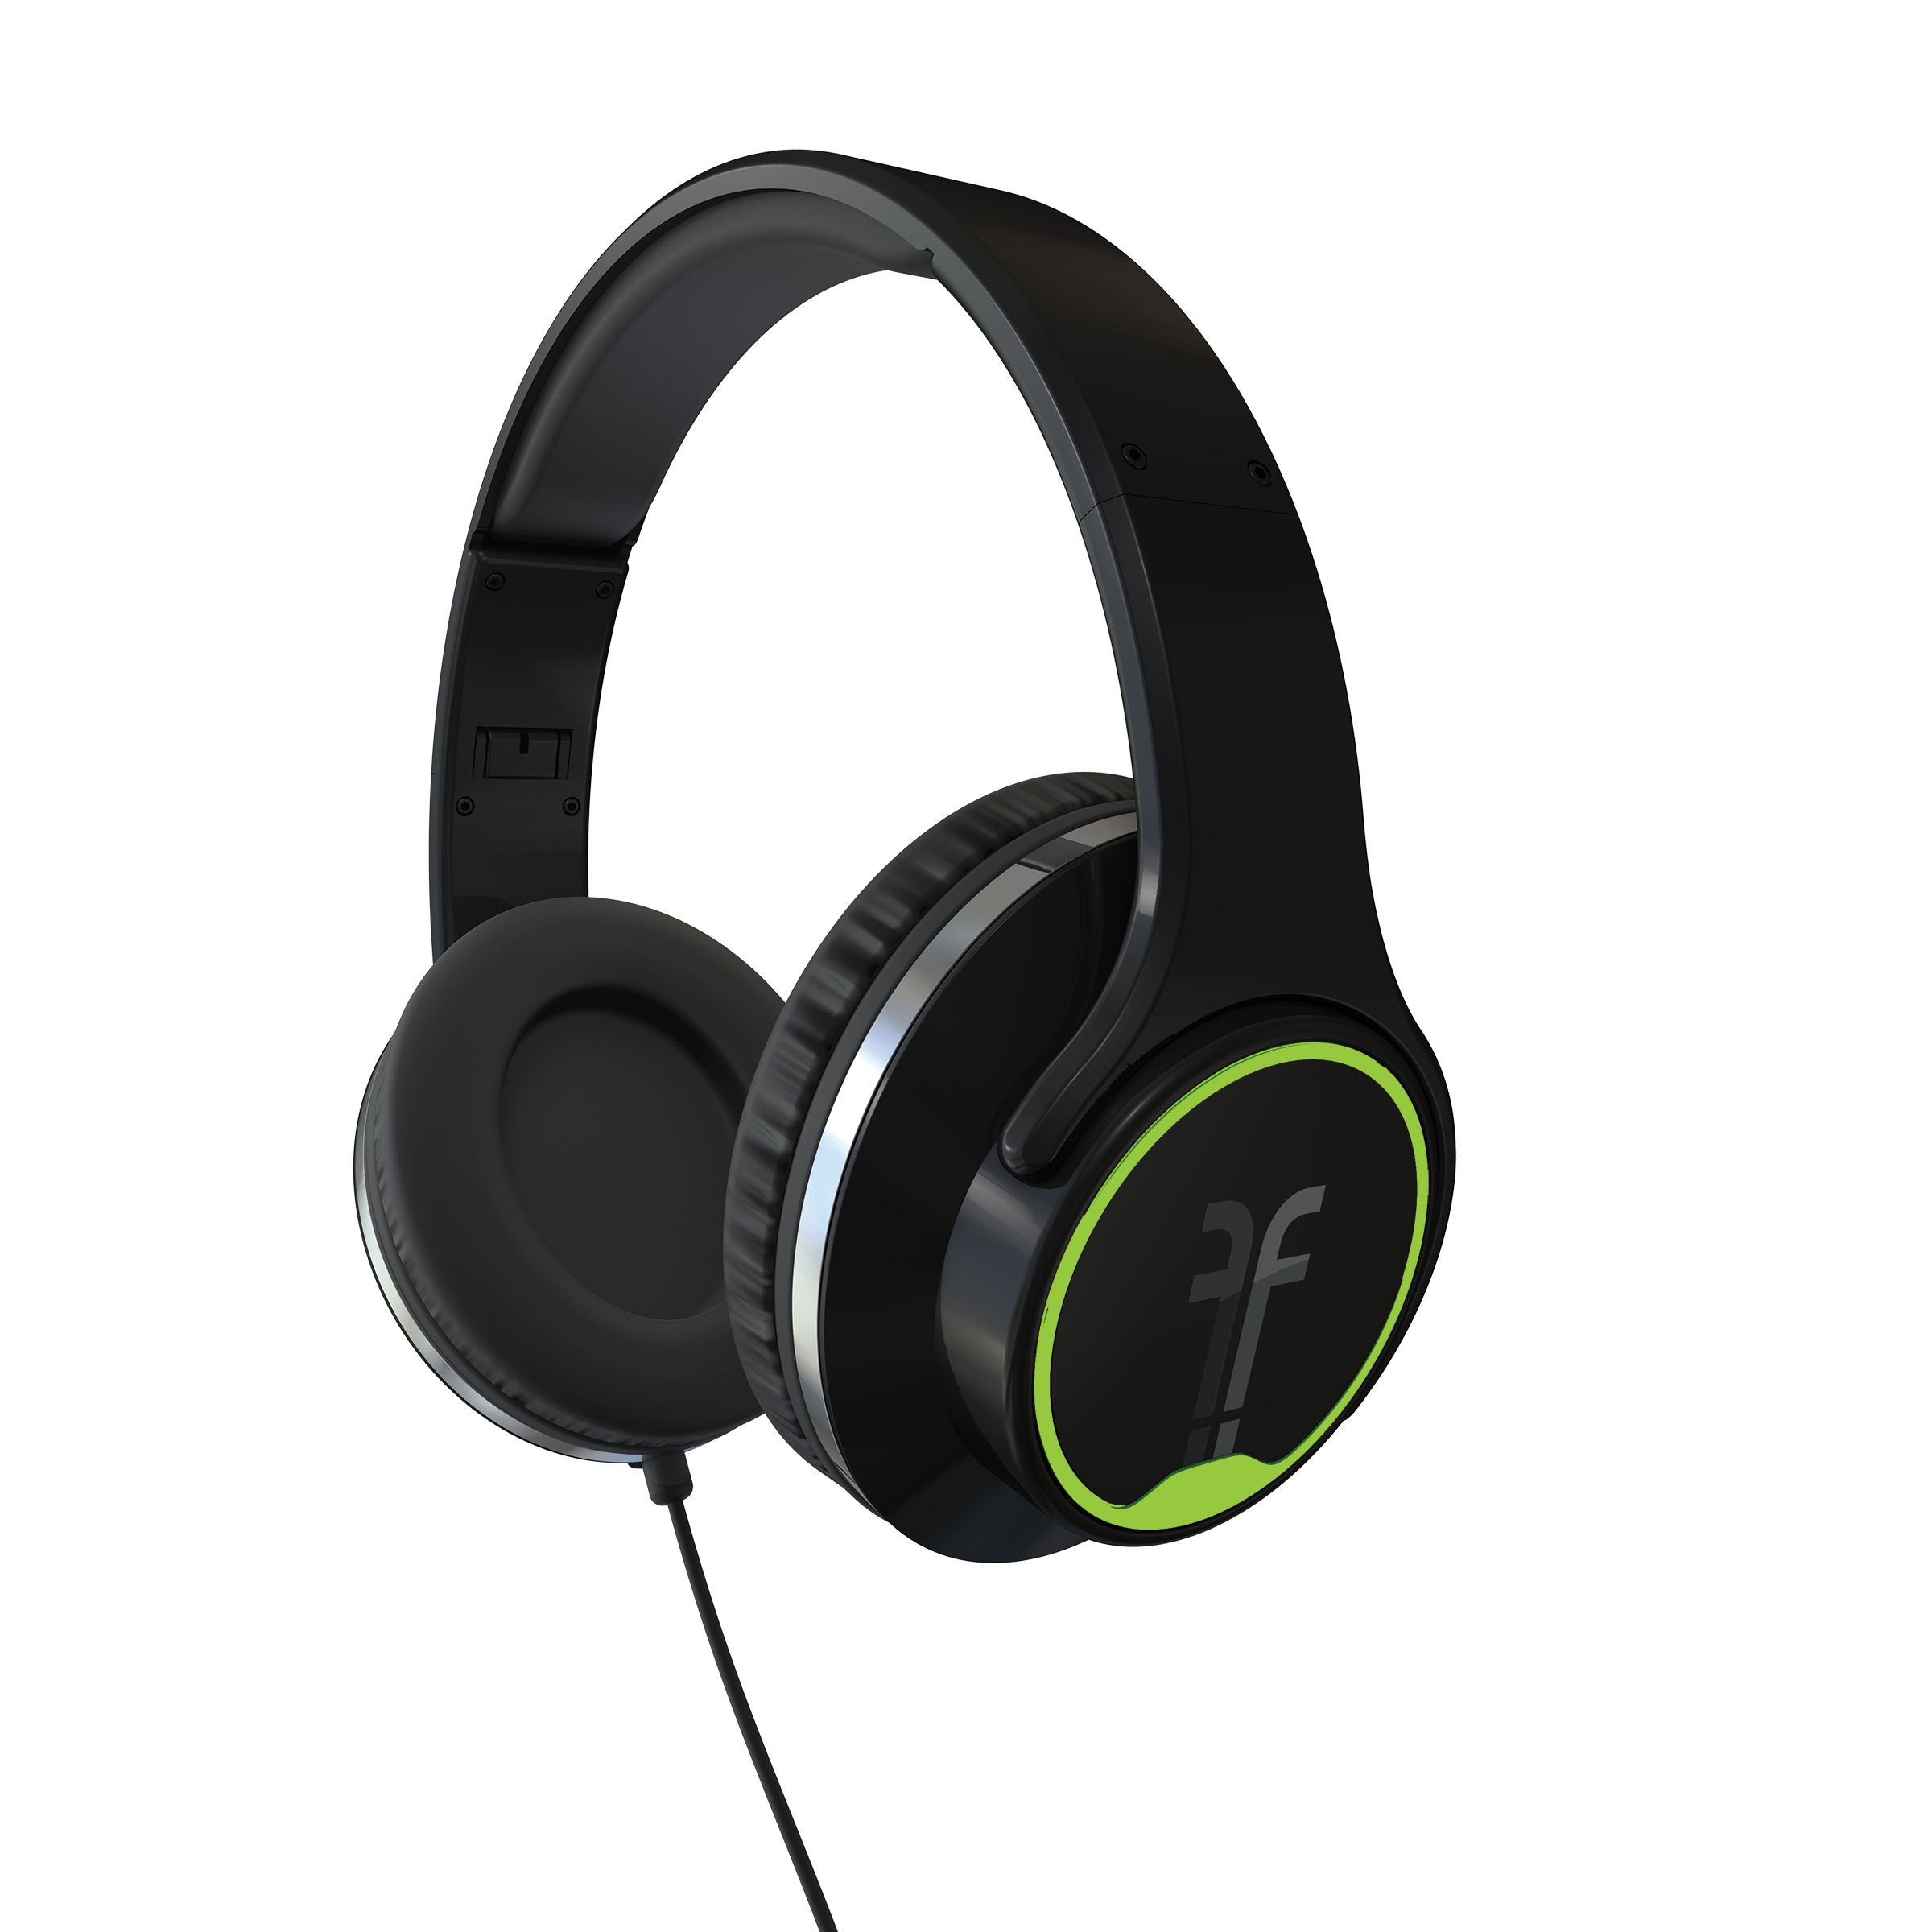 uploads headphones headphones PNG7630 64